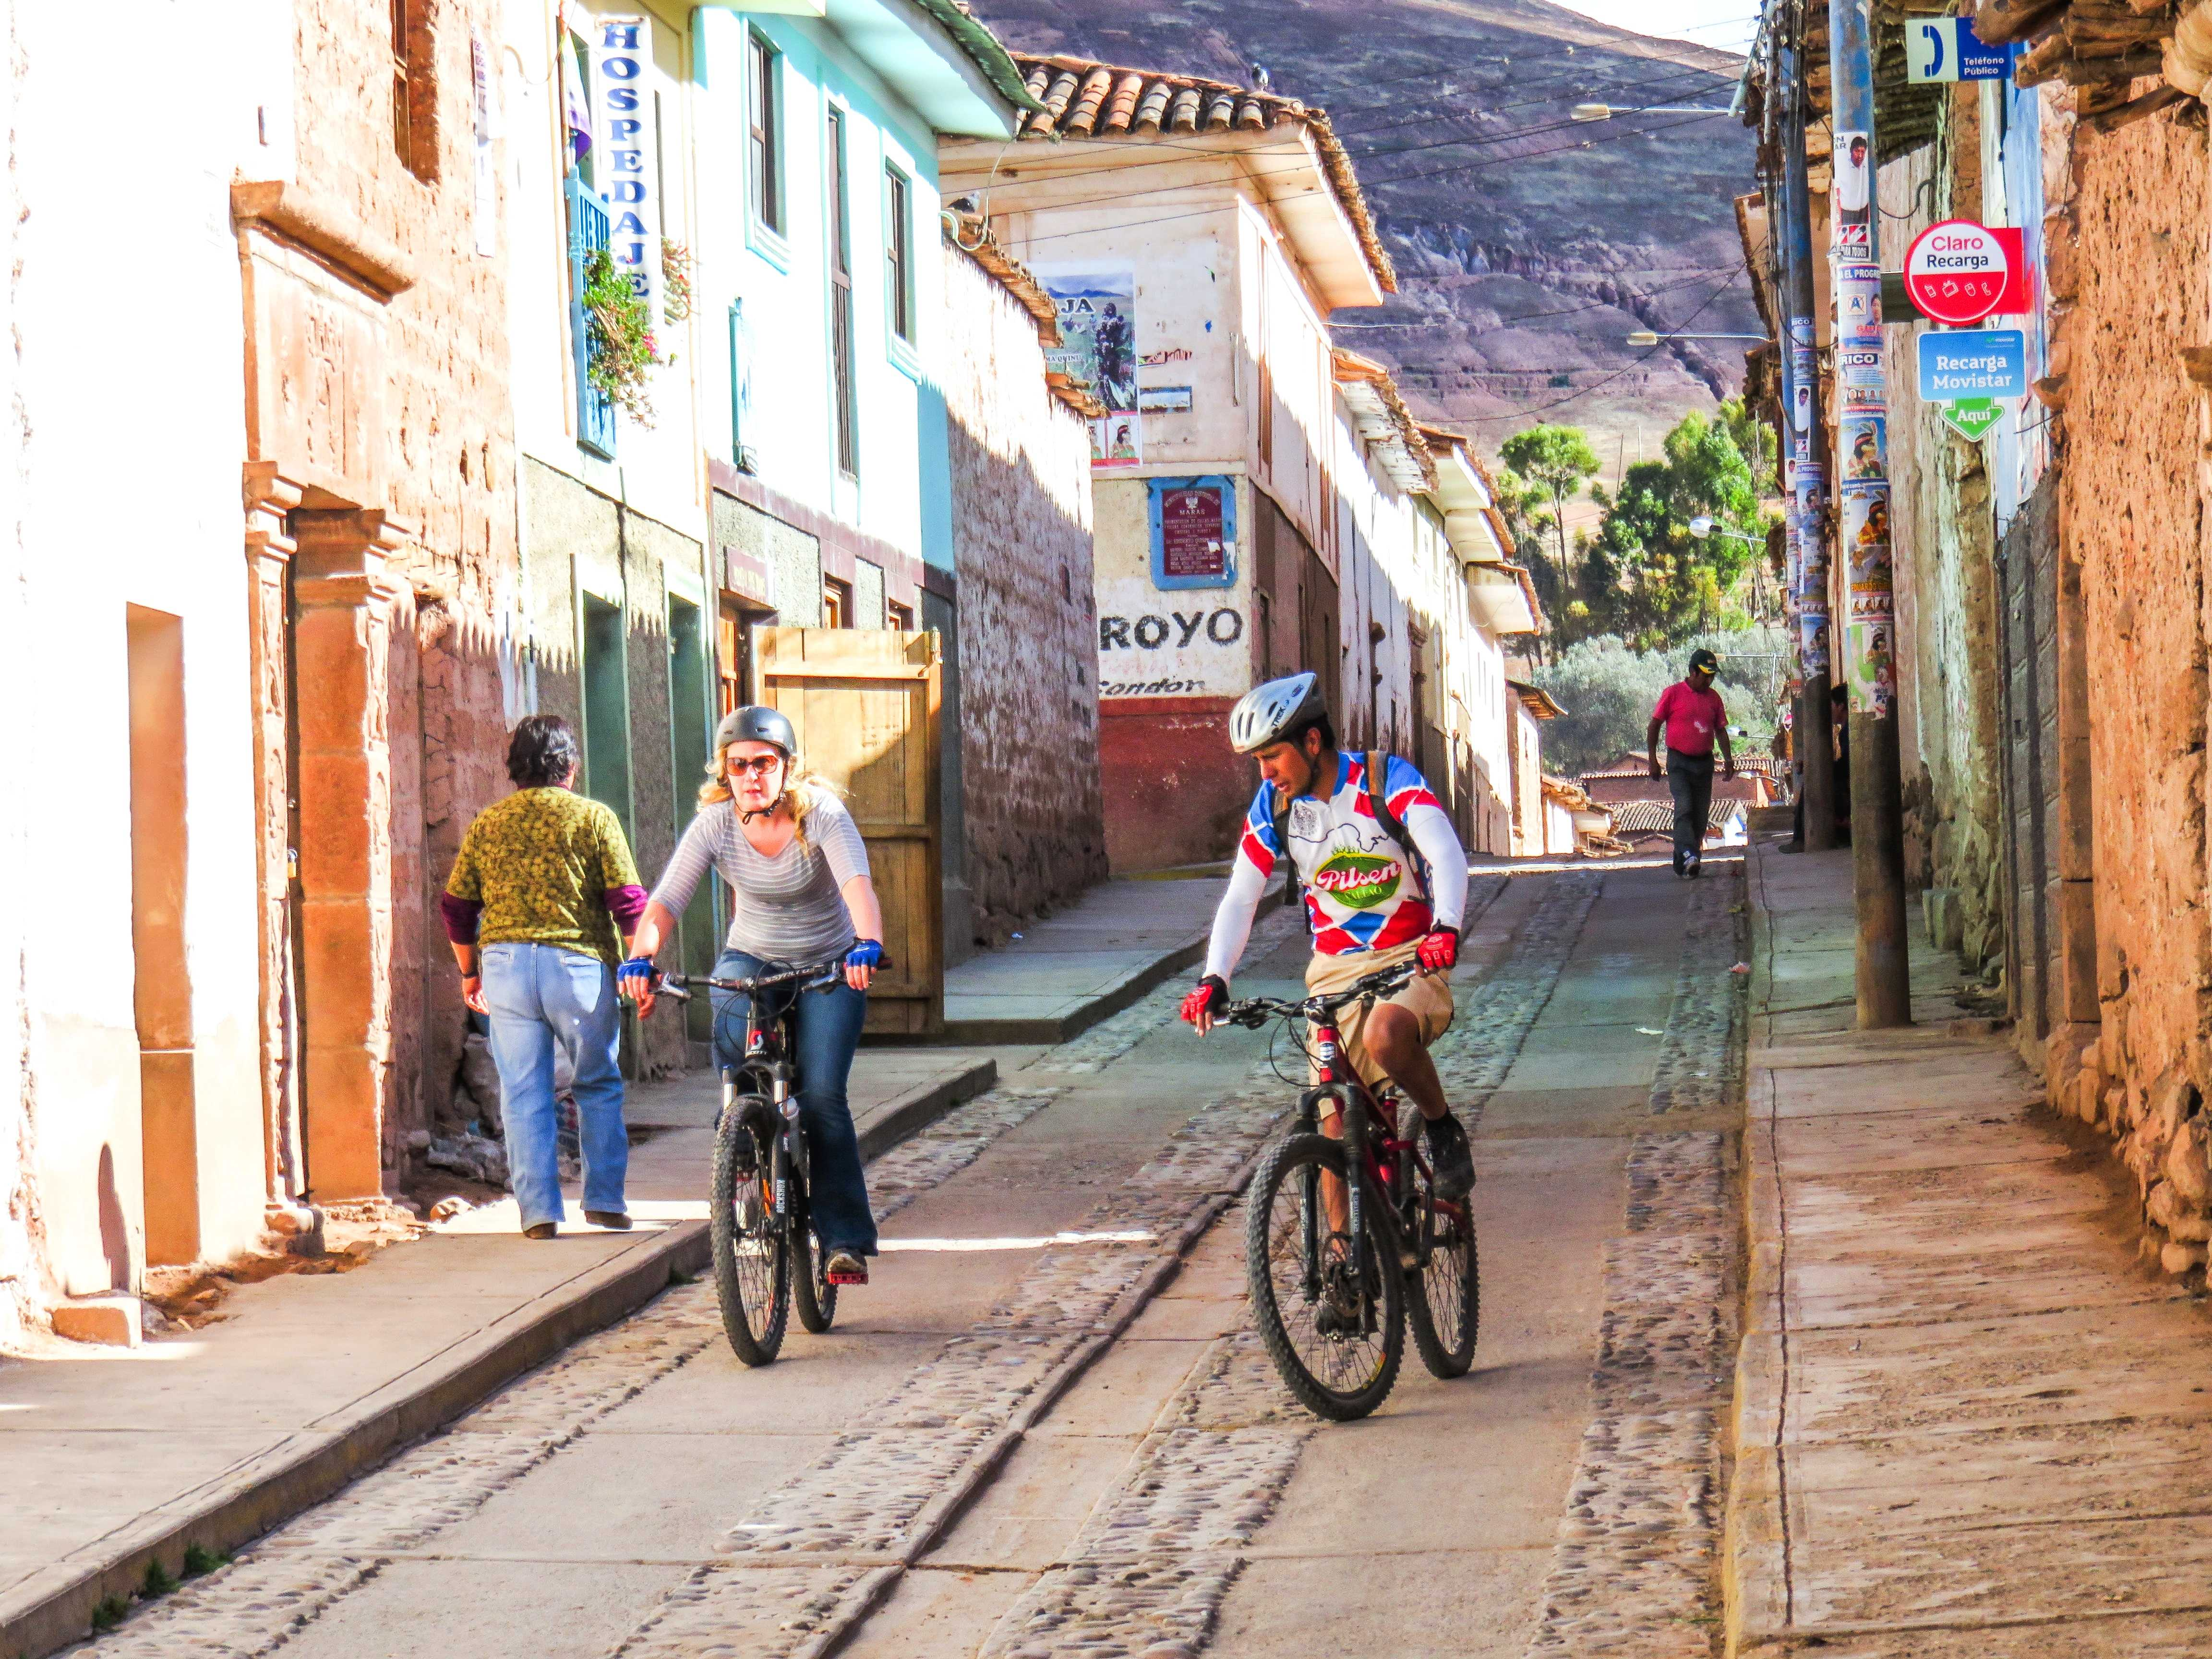 Cycling on the streets of Peru